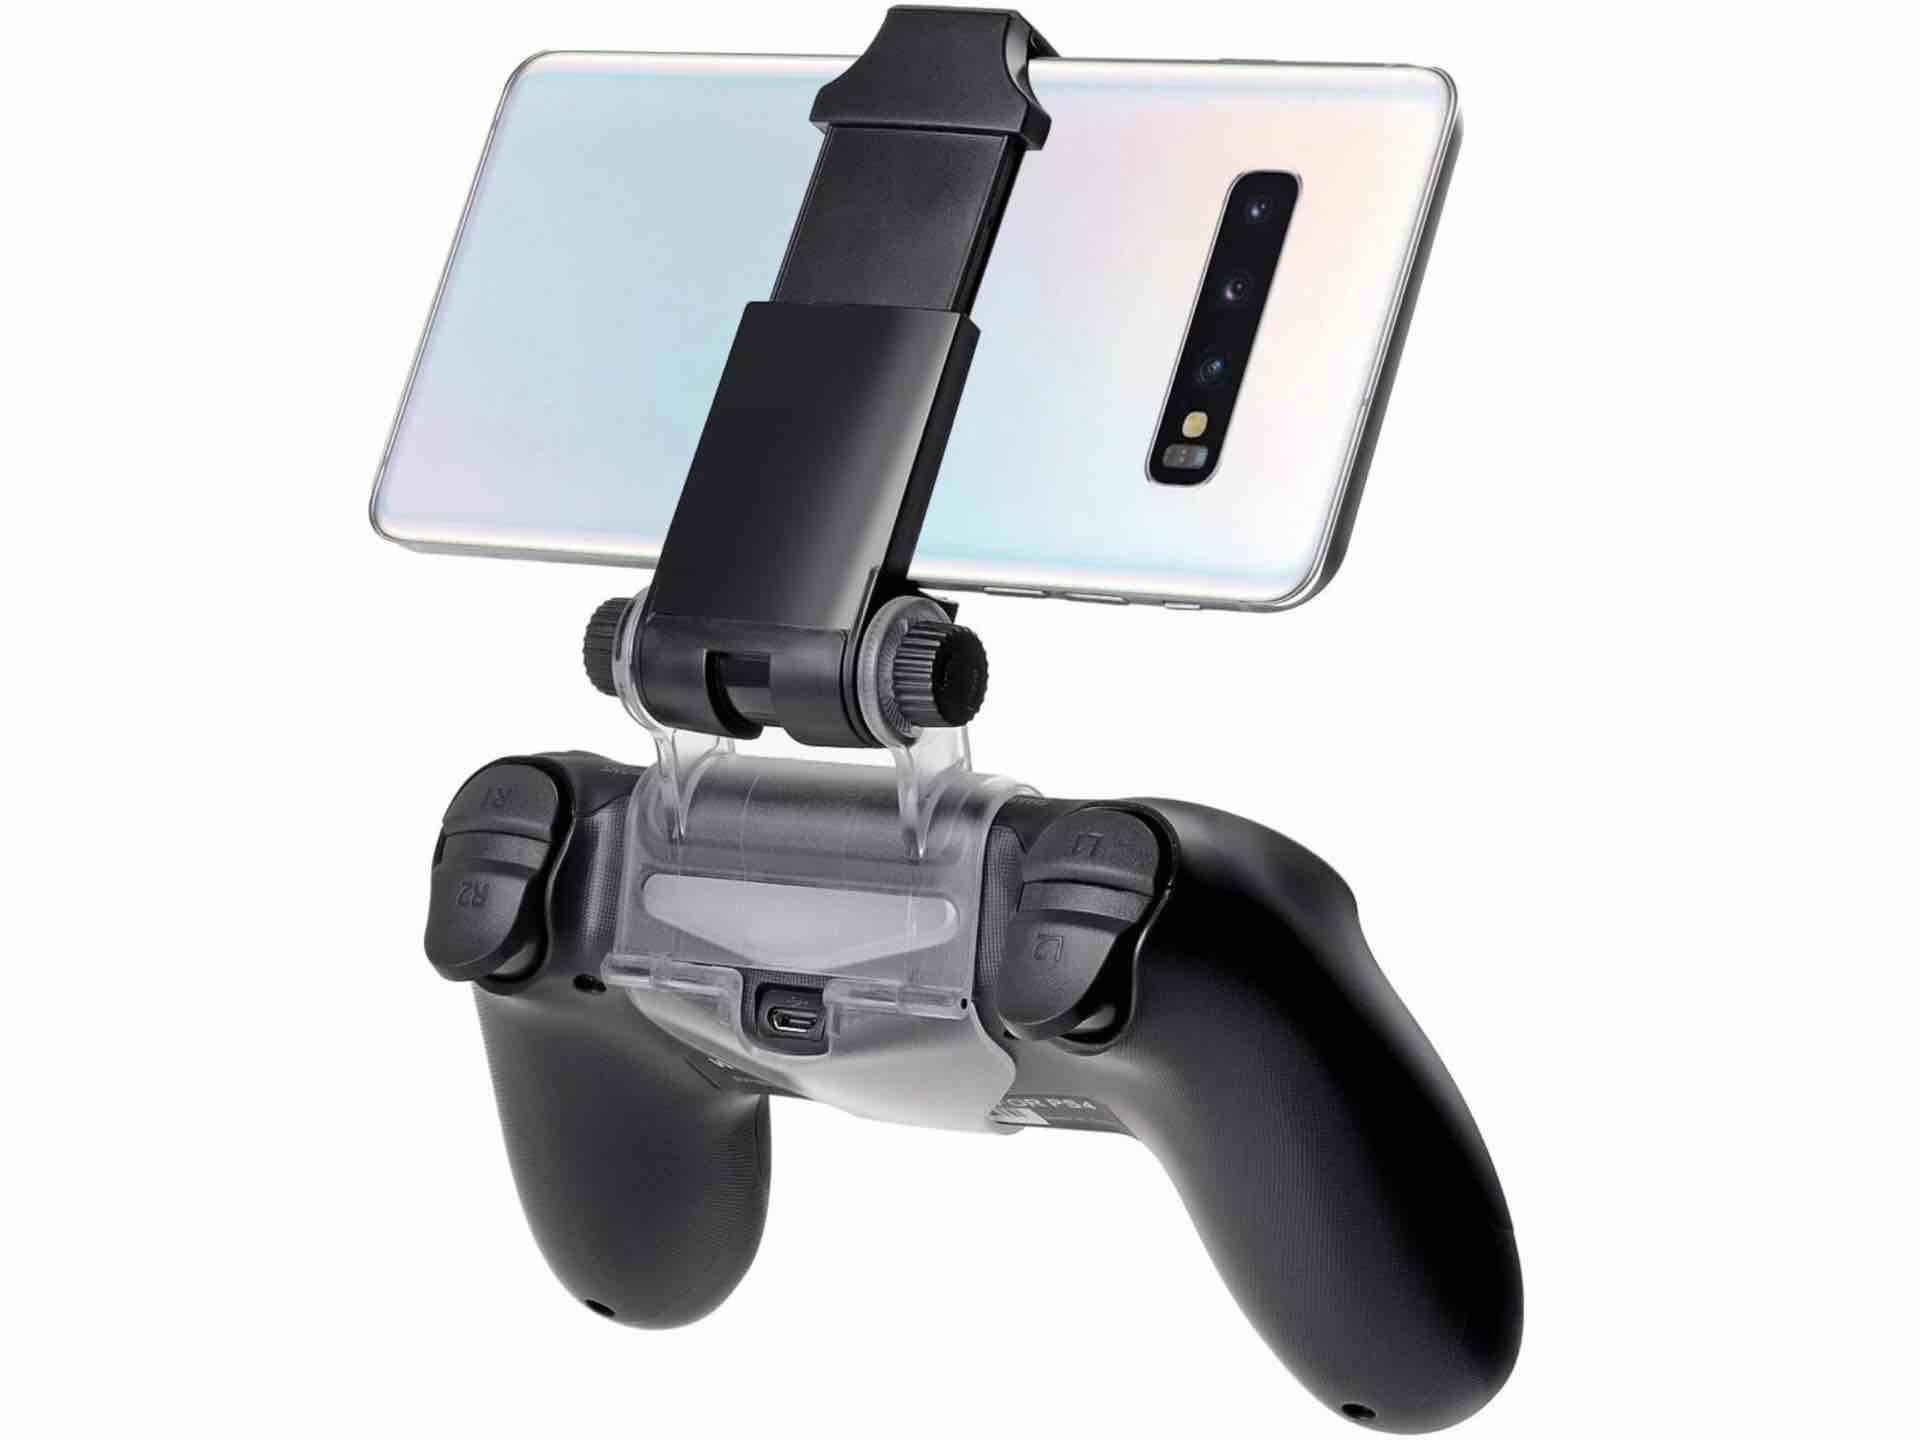 vseer-phone-mount-for-ps4-controller-back